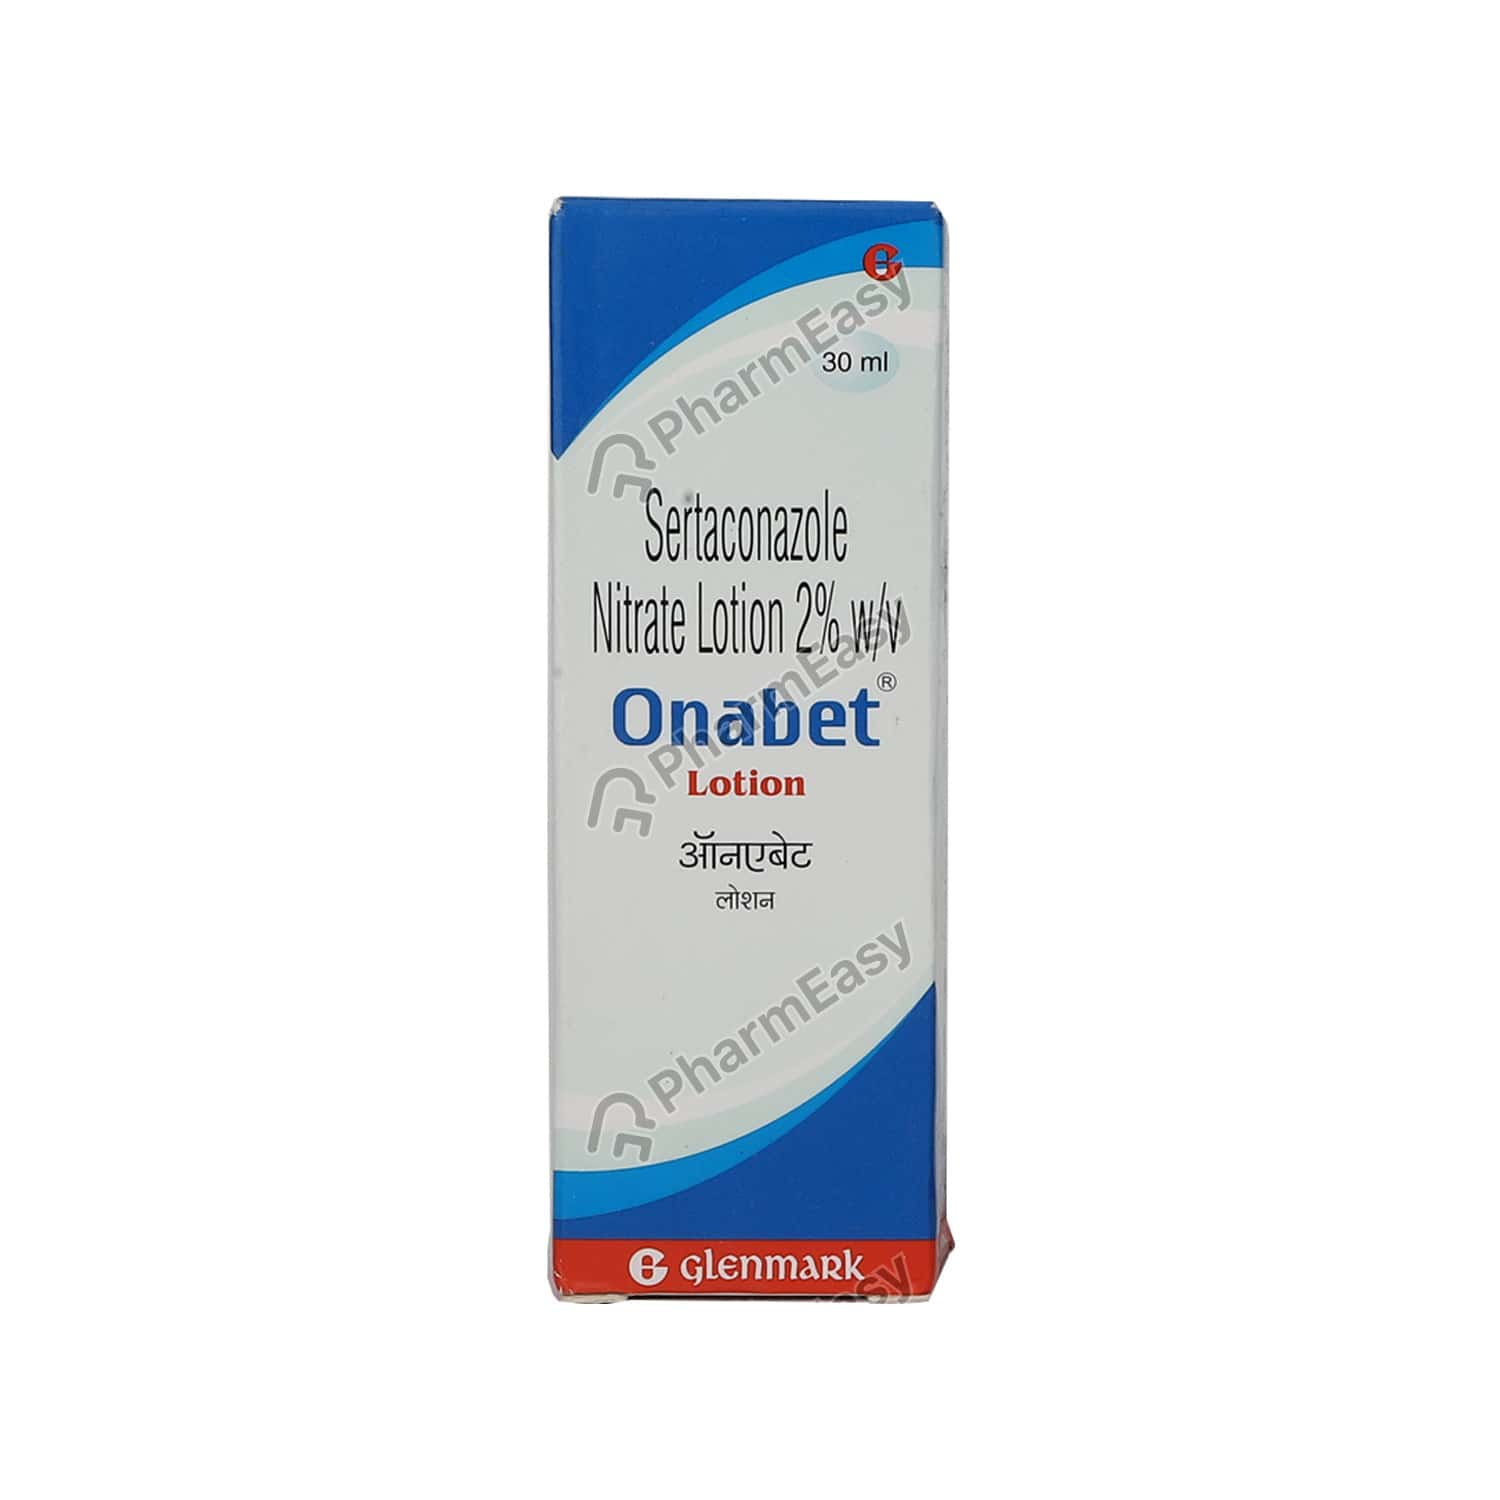 Onabet 2% Lotion 30ml